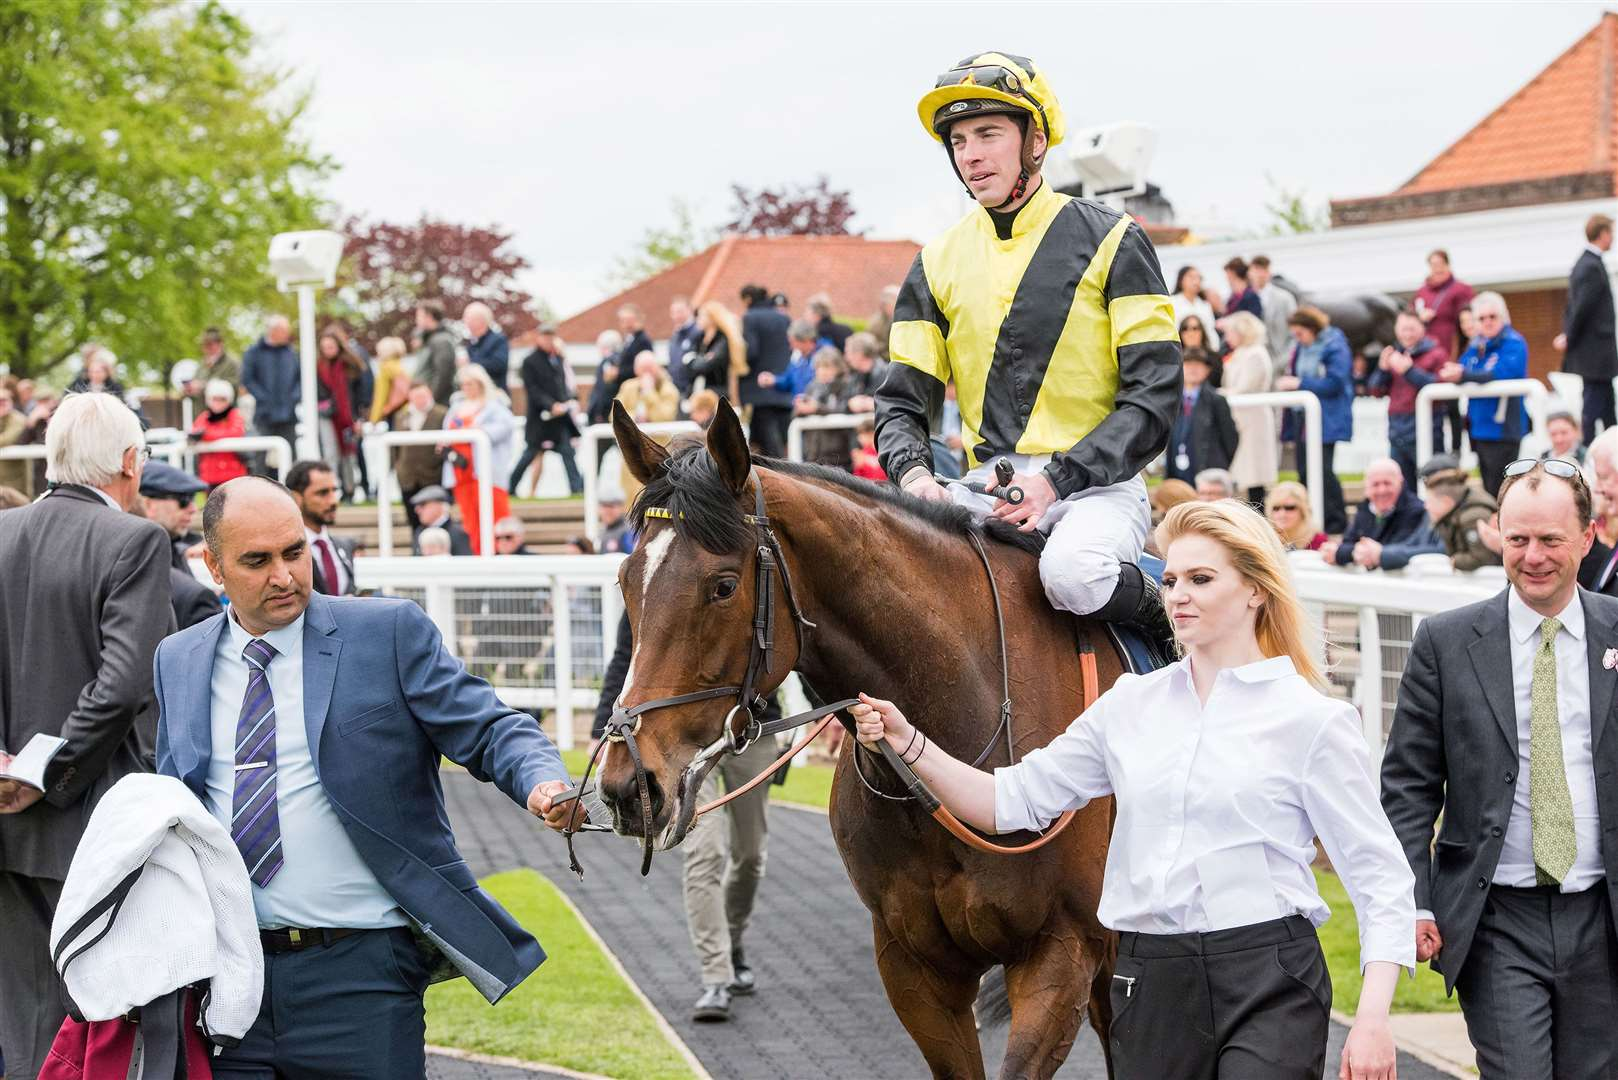 1000 Guineas Day At Newmarket Rowley Mile Charm Spirit Dahlia Stakes (Group 2) (Fillies & Mares).6. Worth Waiting.Winning jockey: James Doyle.Winning trainer: David Lanigan Picture by Mark Westley. (9718930)